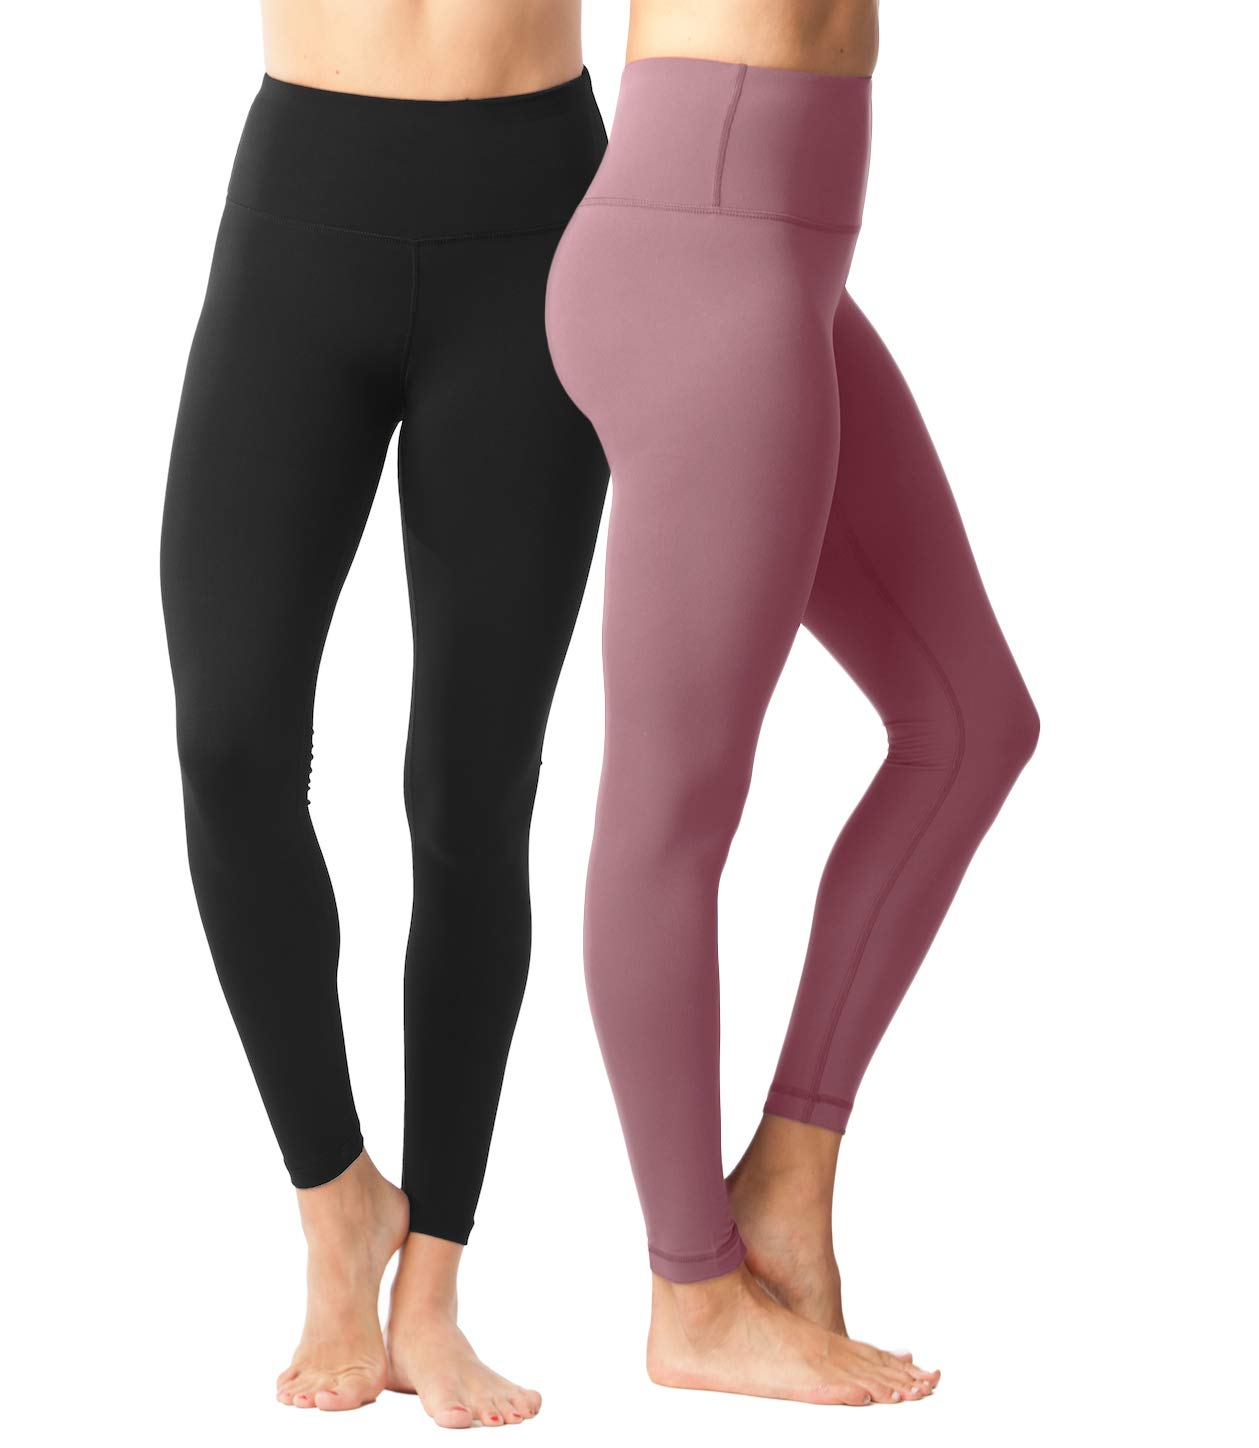 Yogalicious High Waist Ultra Soft Lightweight Leggings - High Rise Yoga Pants - 2 Pack - Black and Pink Cinnamon - XL by Yogalicious